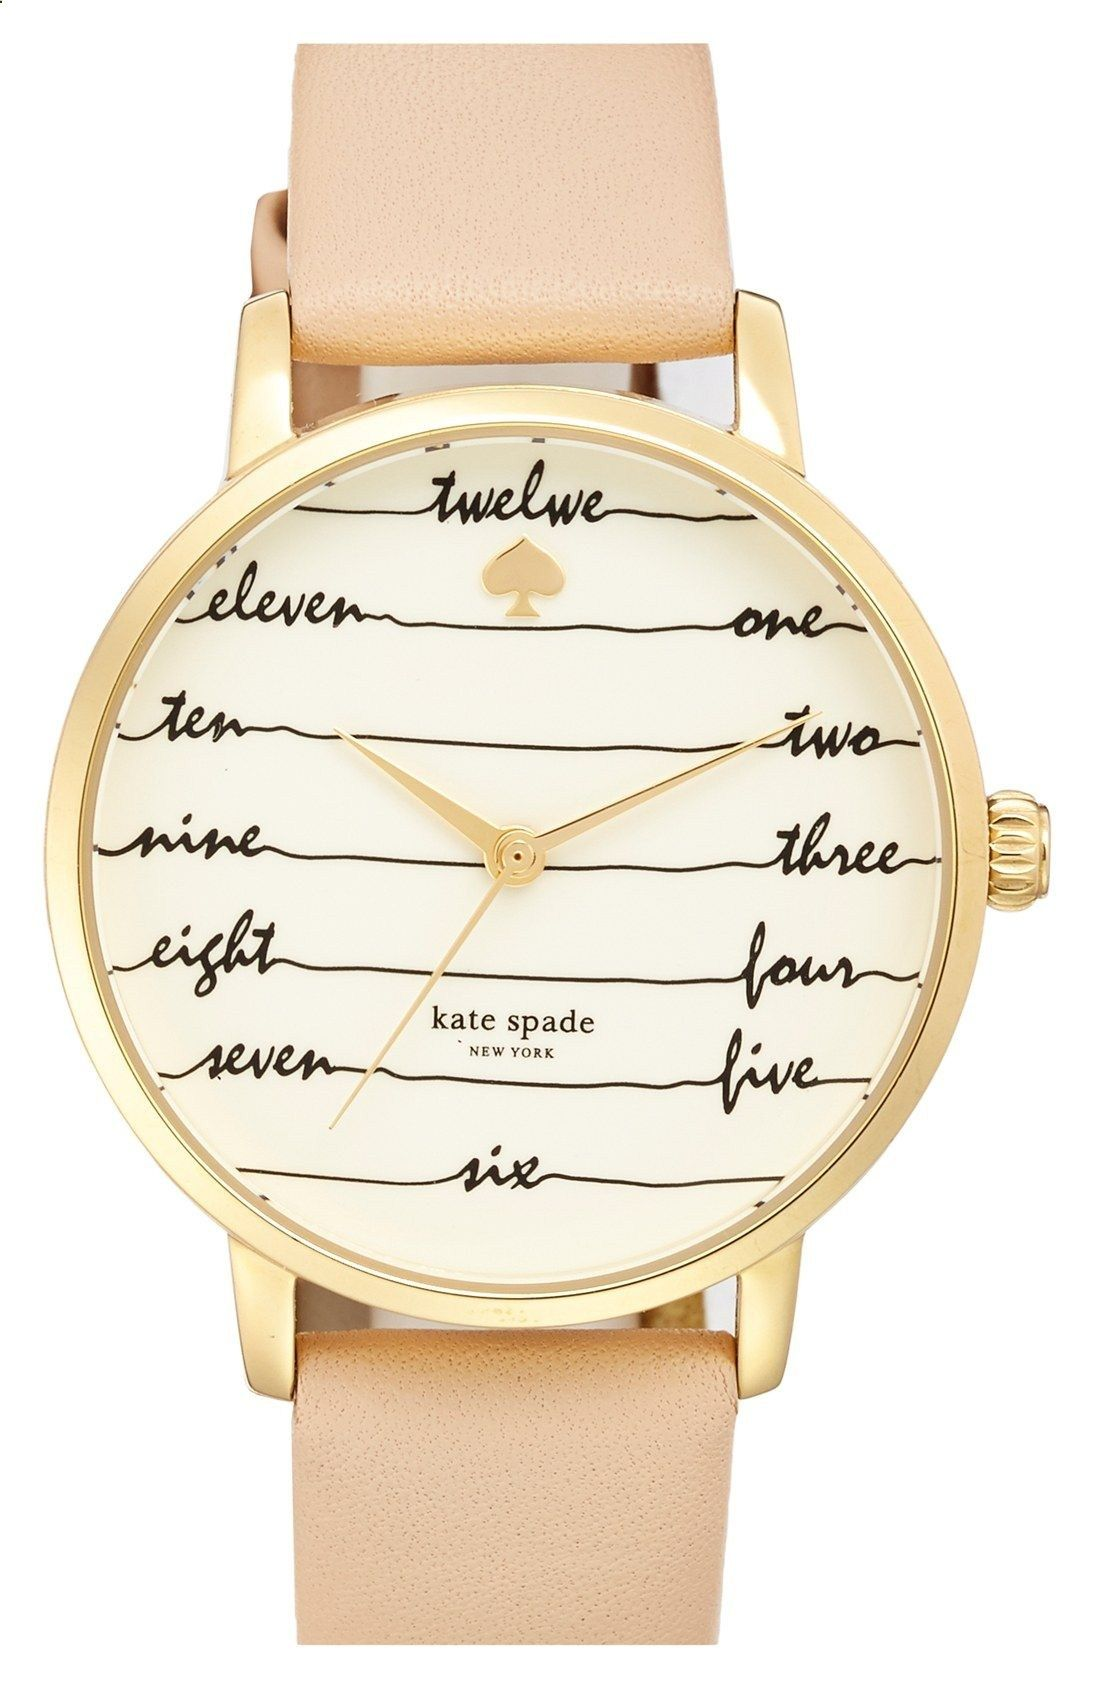 Flowing cursive offers whimsical timekeeping on this gold and leather Kate Spade watch. Its chic and sophisticated look will transition perfectly from outfit to outfit.